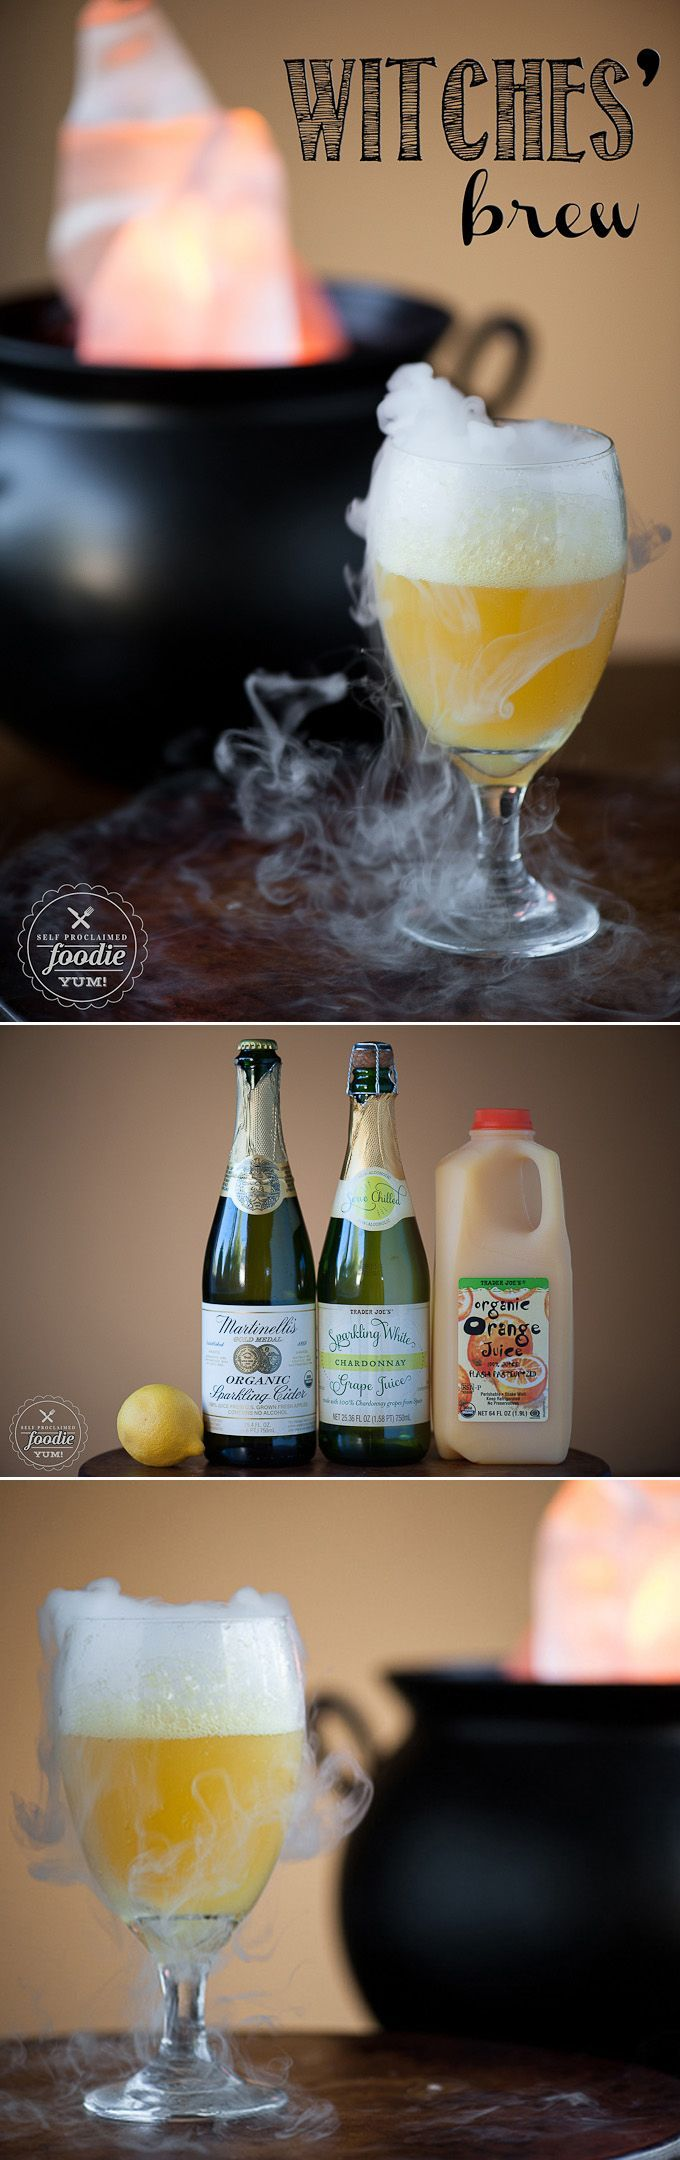 This sweet and sparkling Witches' Brew made with fruit juice is a fun Halloween party drink for all ages and can easily be made into an adult cocktail too. #happyhalloween